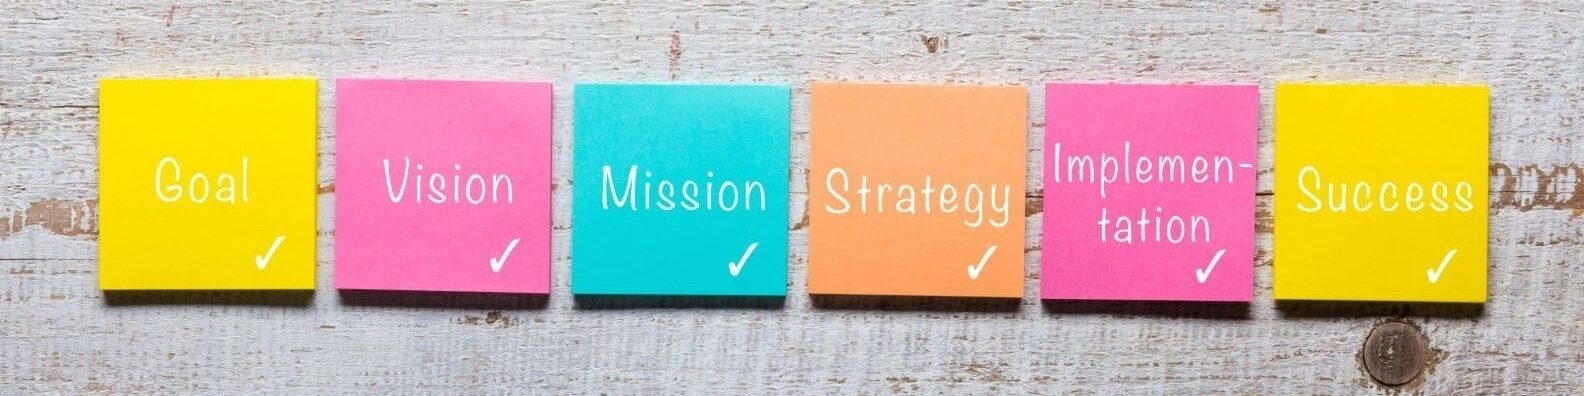 marketing process, Goal, Vision, Mission, Strategy, Implementation, Success